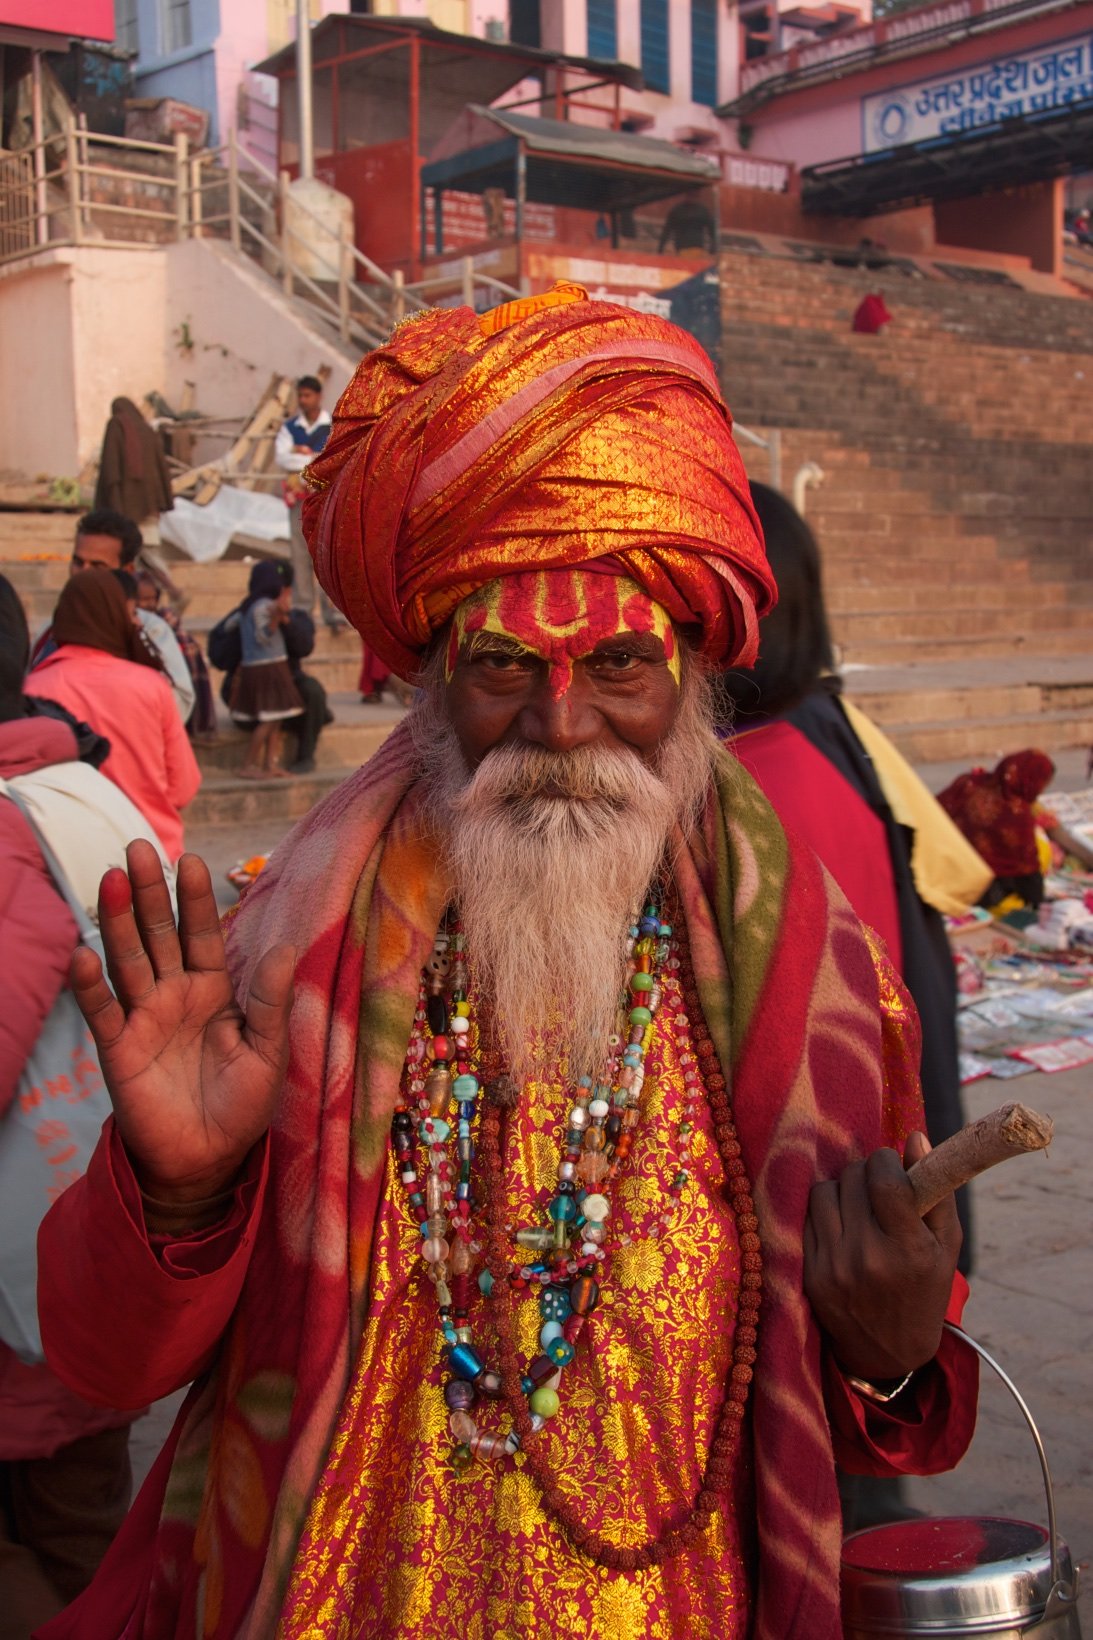 A self-appointed sadhu [wise man] asking for alms. Varanasi, India.